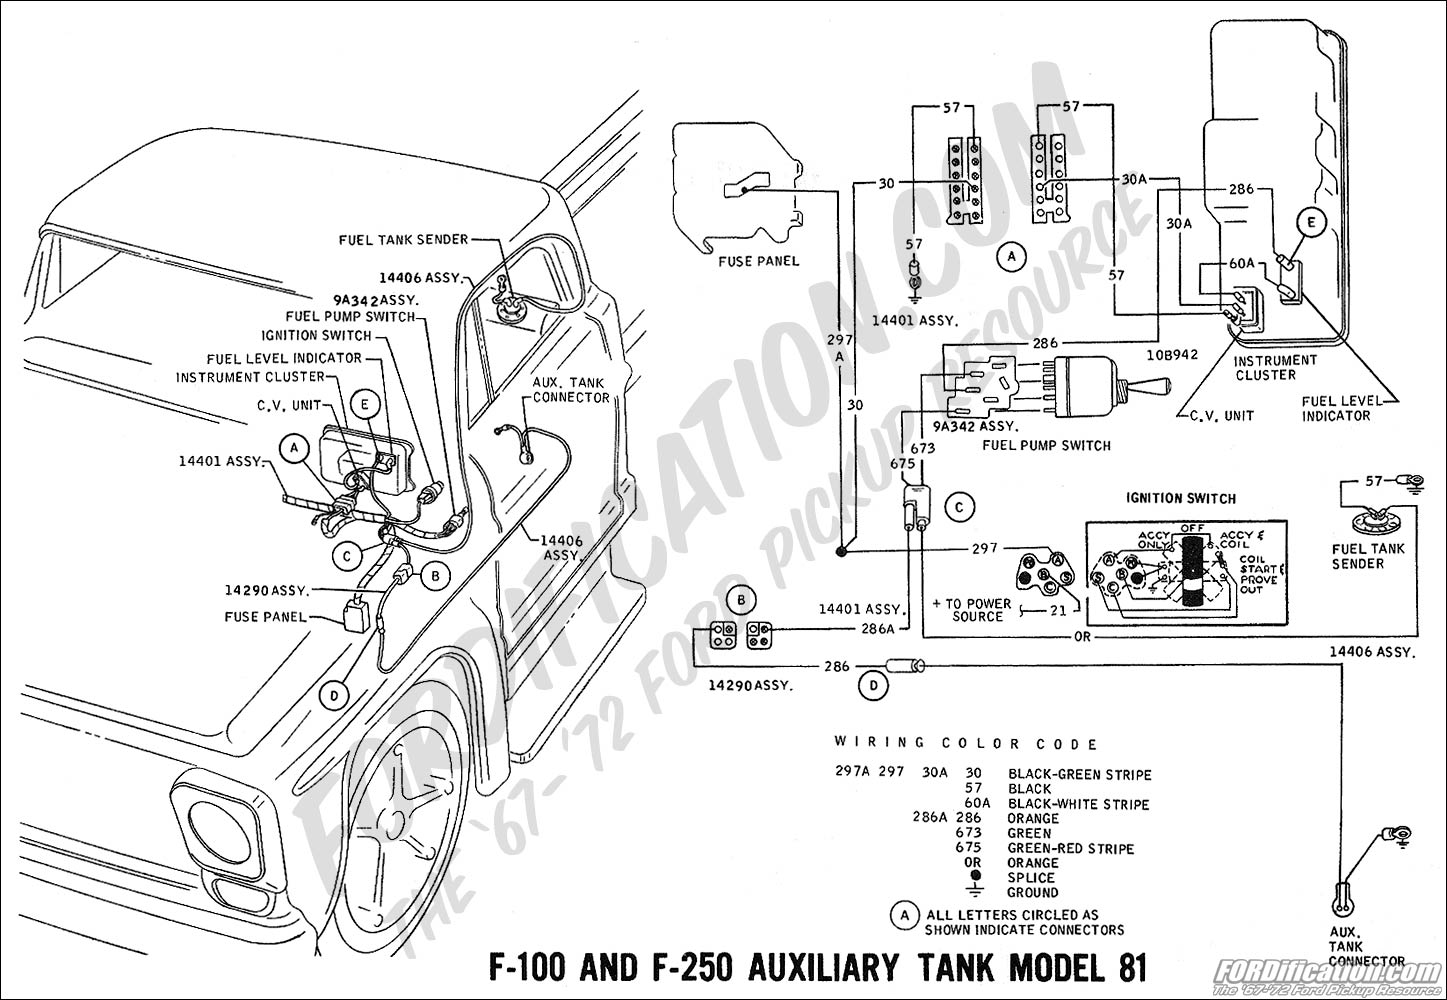 wiring_69aux fuel 69 f100 wiring diagram 1973 ford f100 wiring diagram \u2022 wiring Ford E-350 Fuse Box Diagram at soozxer.org